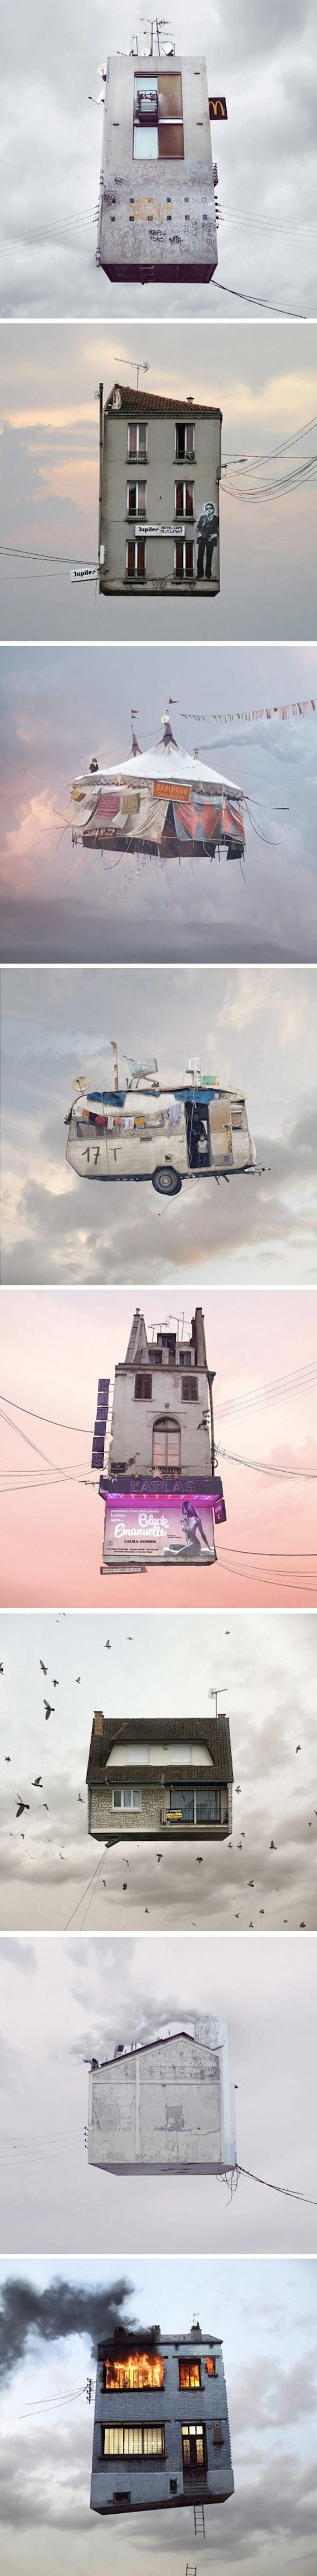 Flying houses art